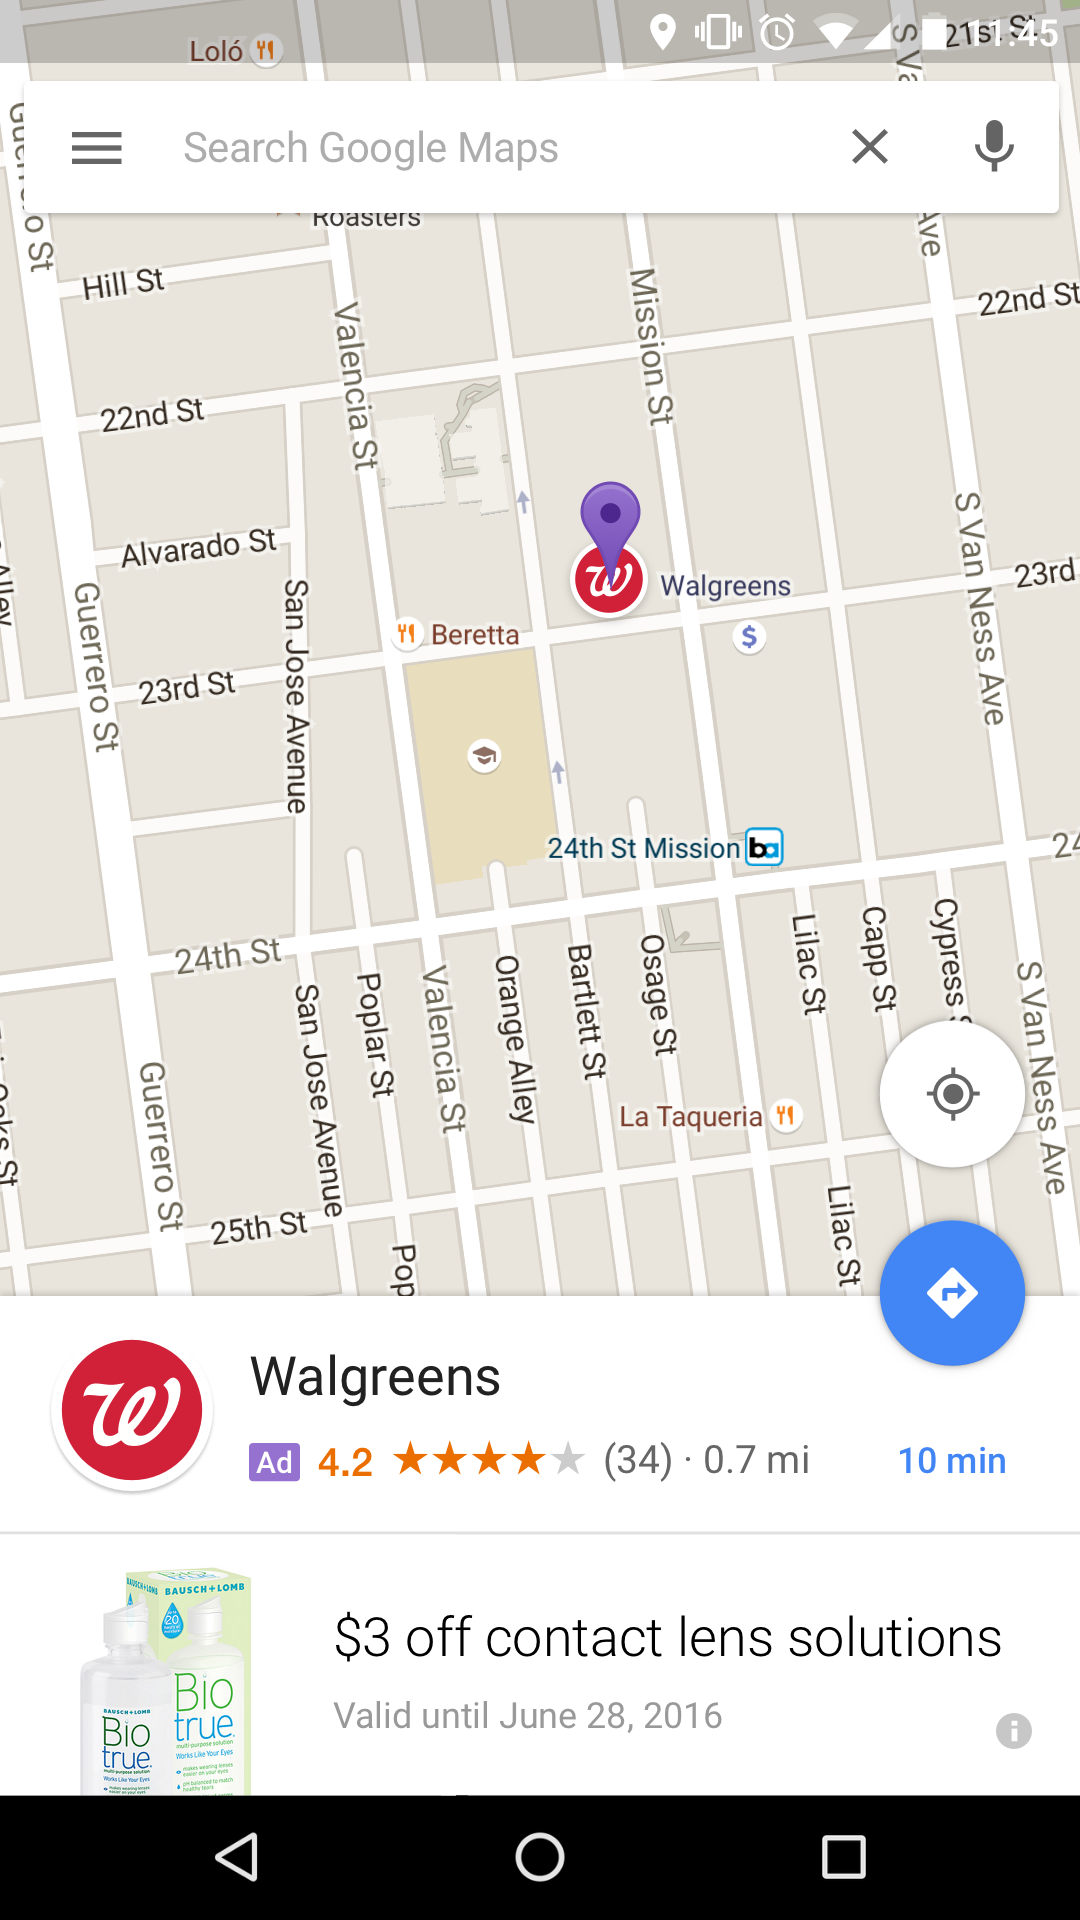 Get ready for more ads on Google Maps